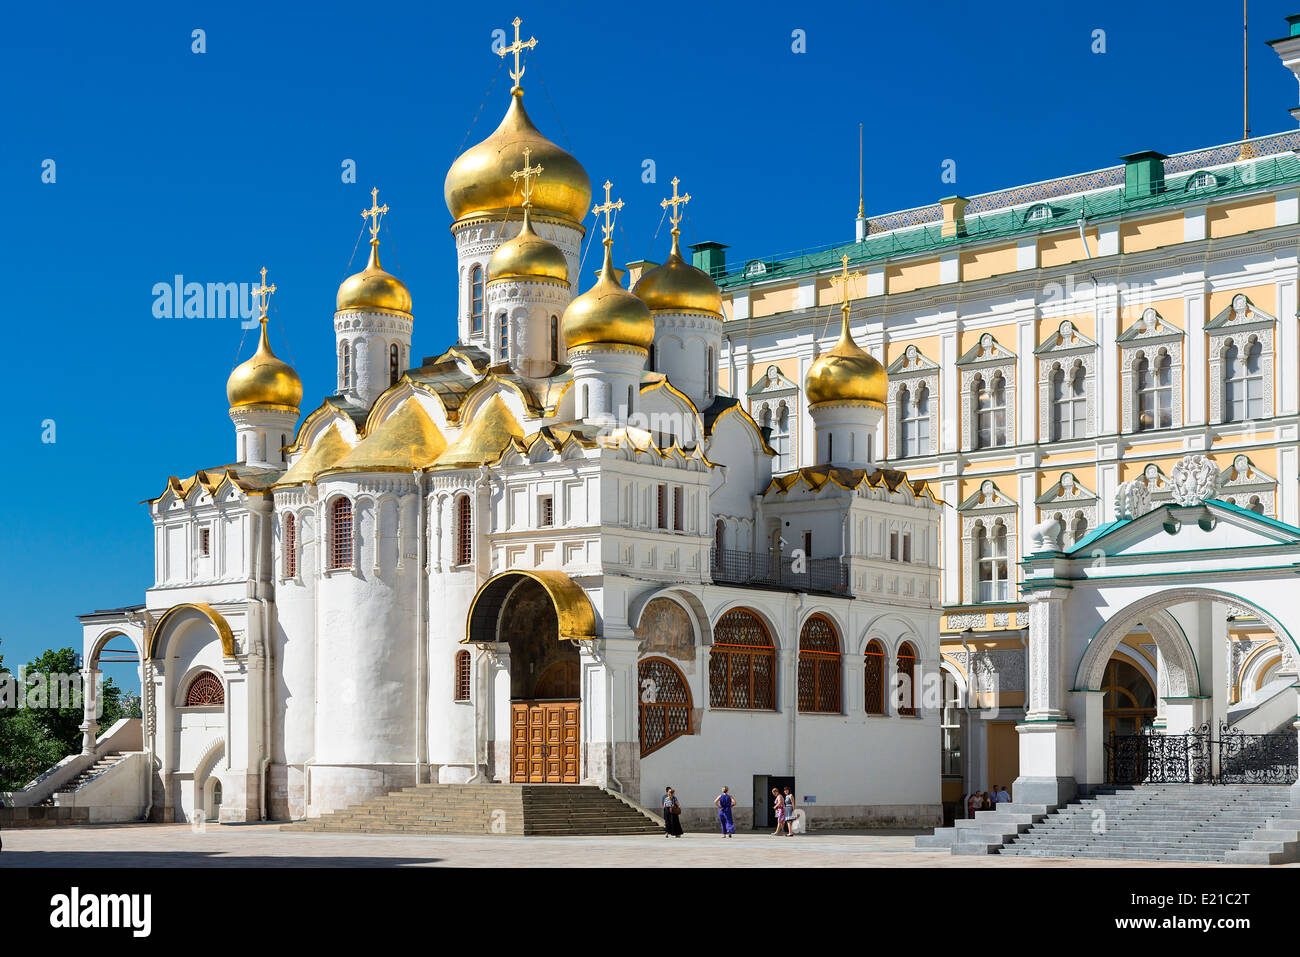 Moscow, Kremlin, Annunciation Cathedral - Stock Image